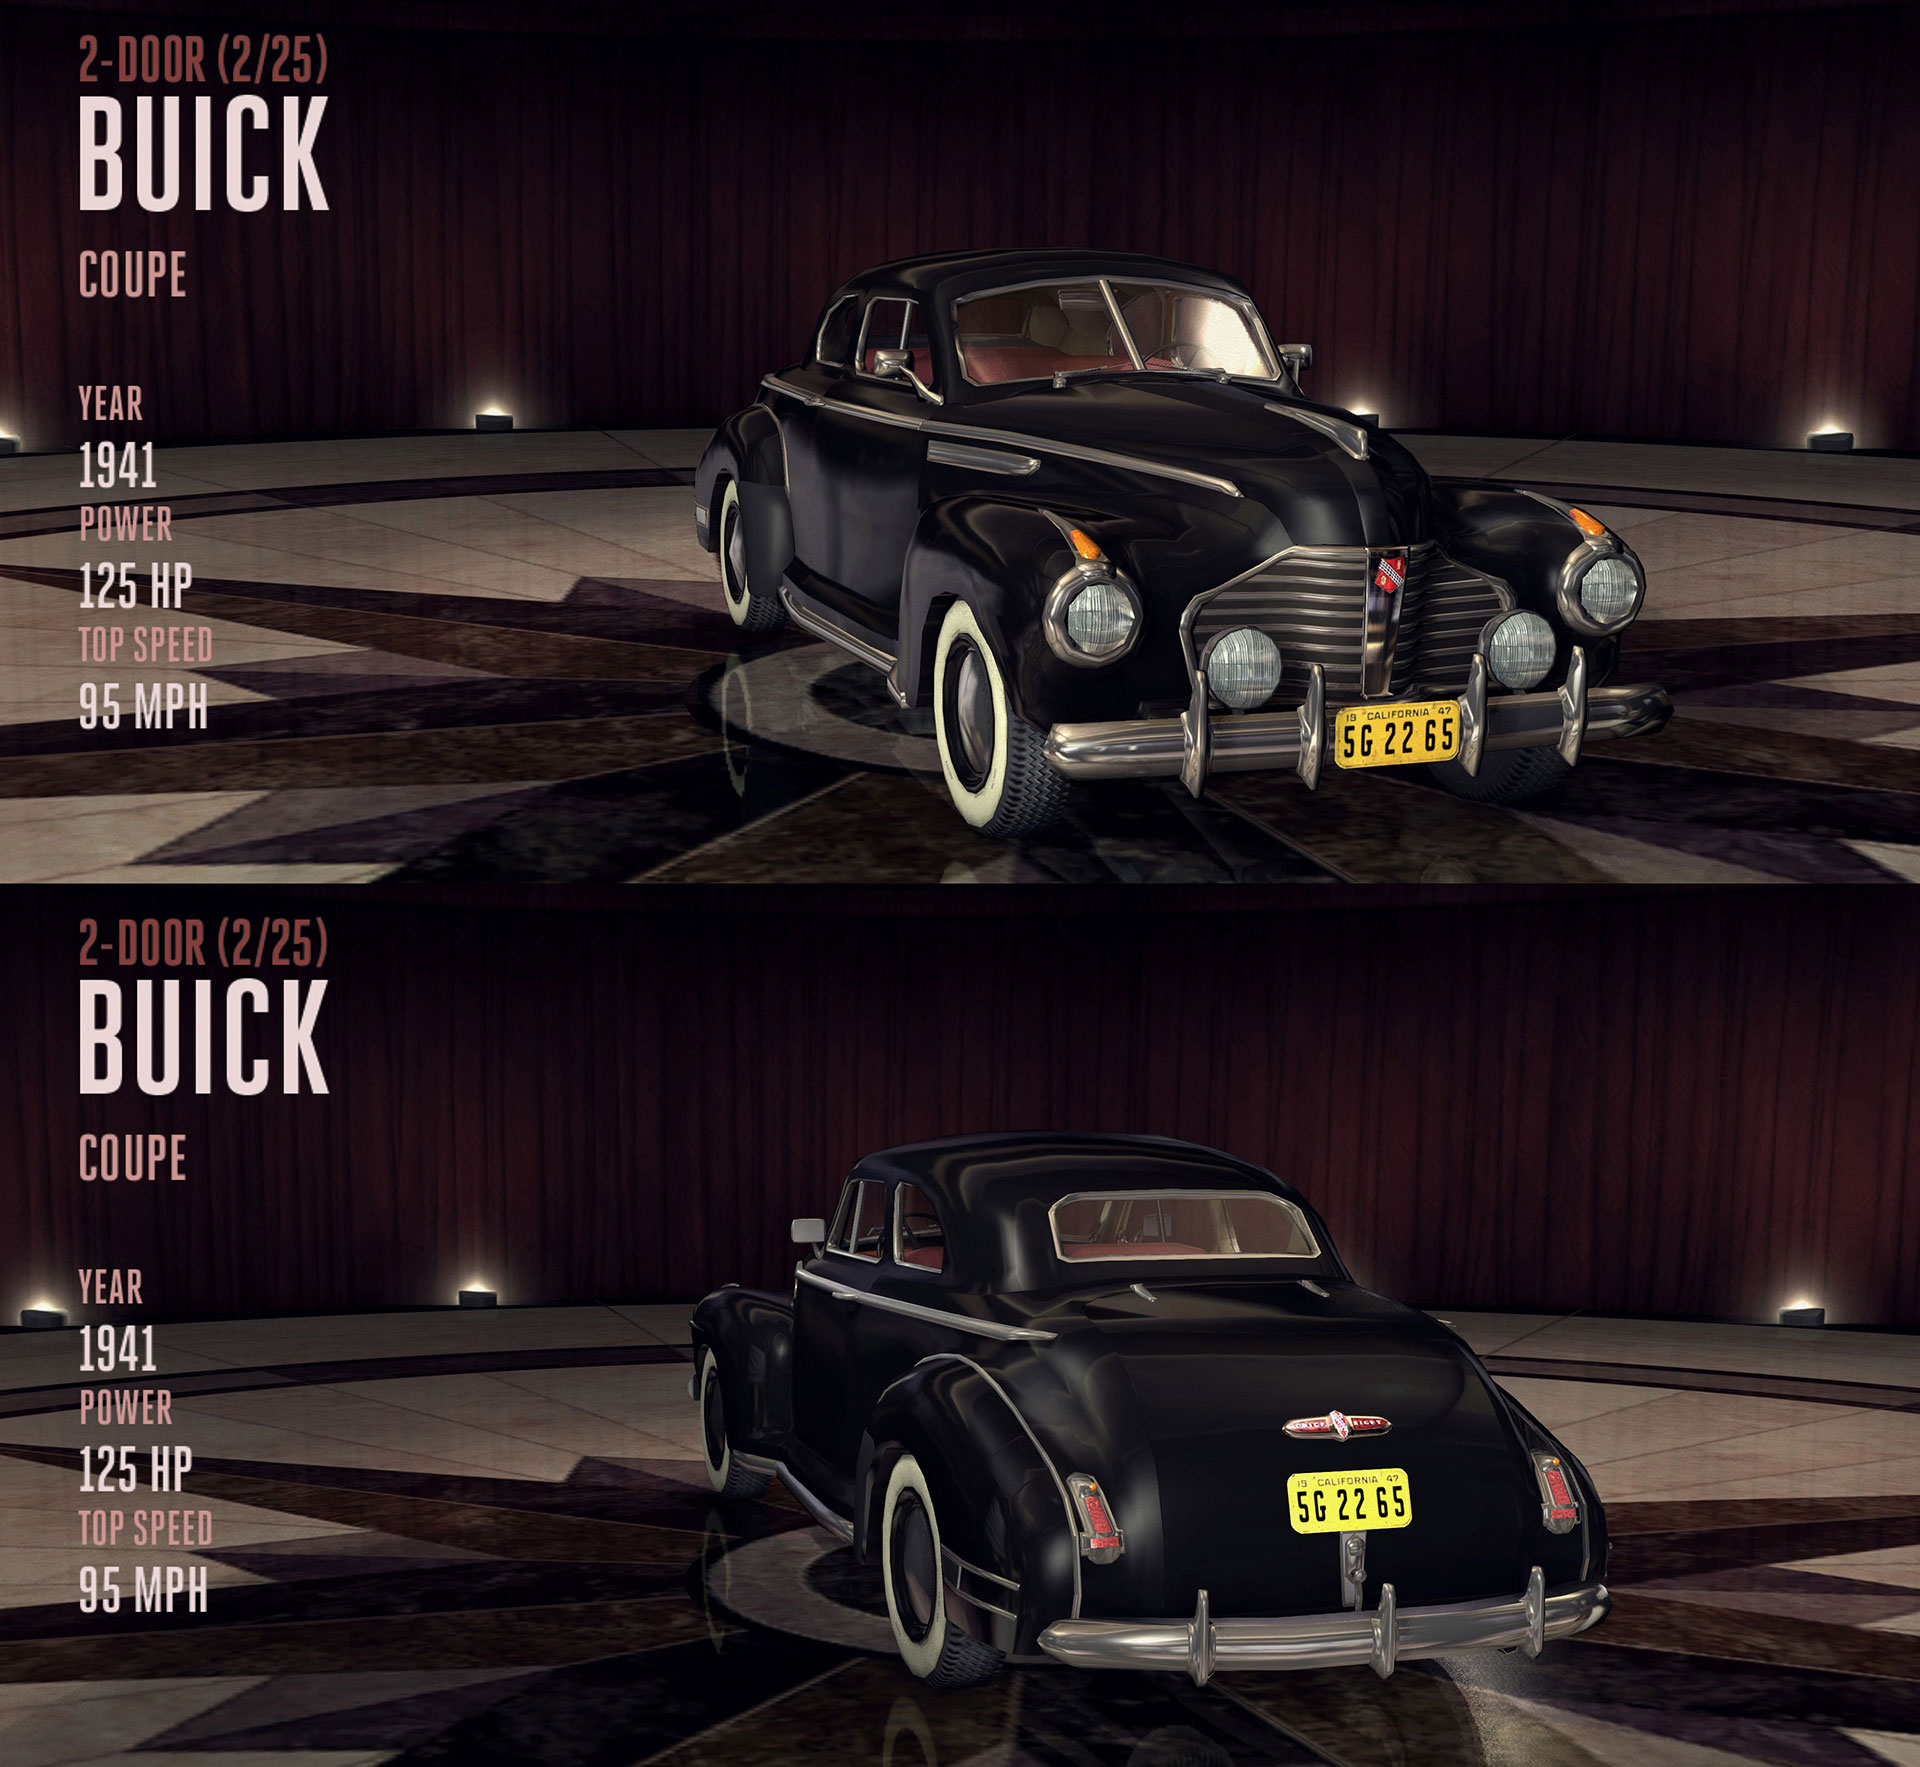 Archivo:1941-buick-coupe.jpg